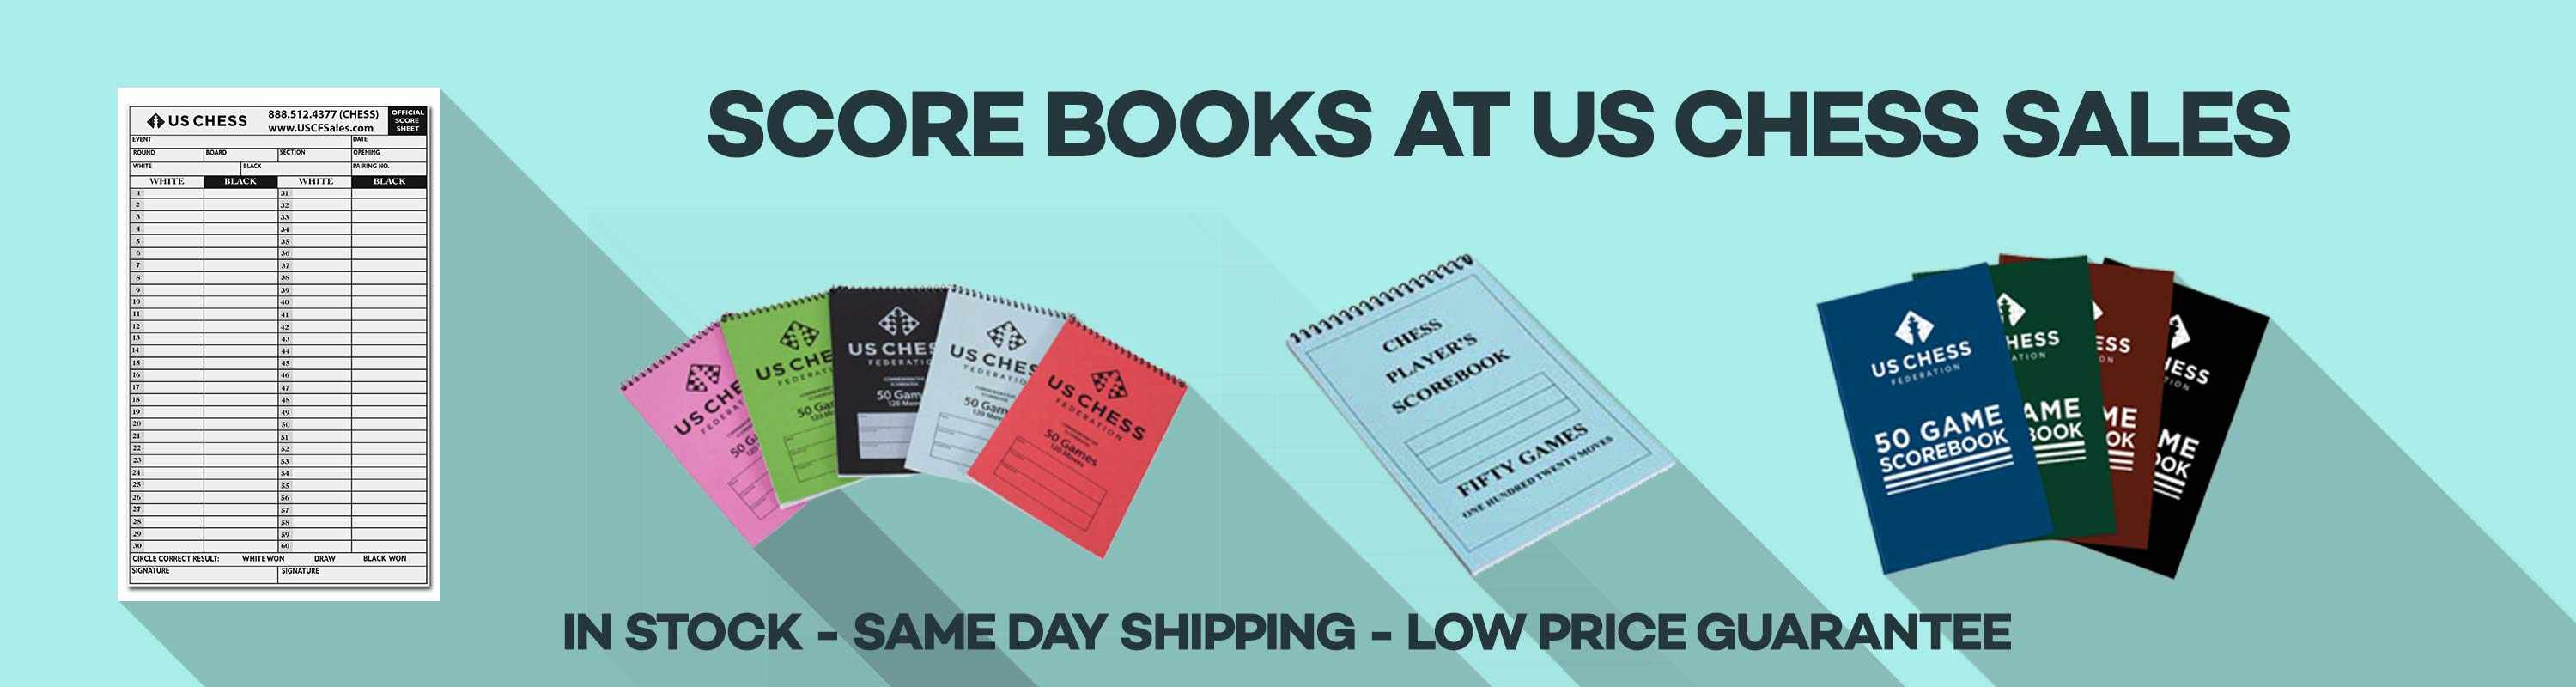 Scorebooks at us chess sales